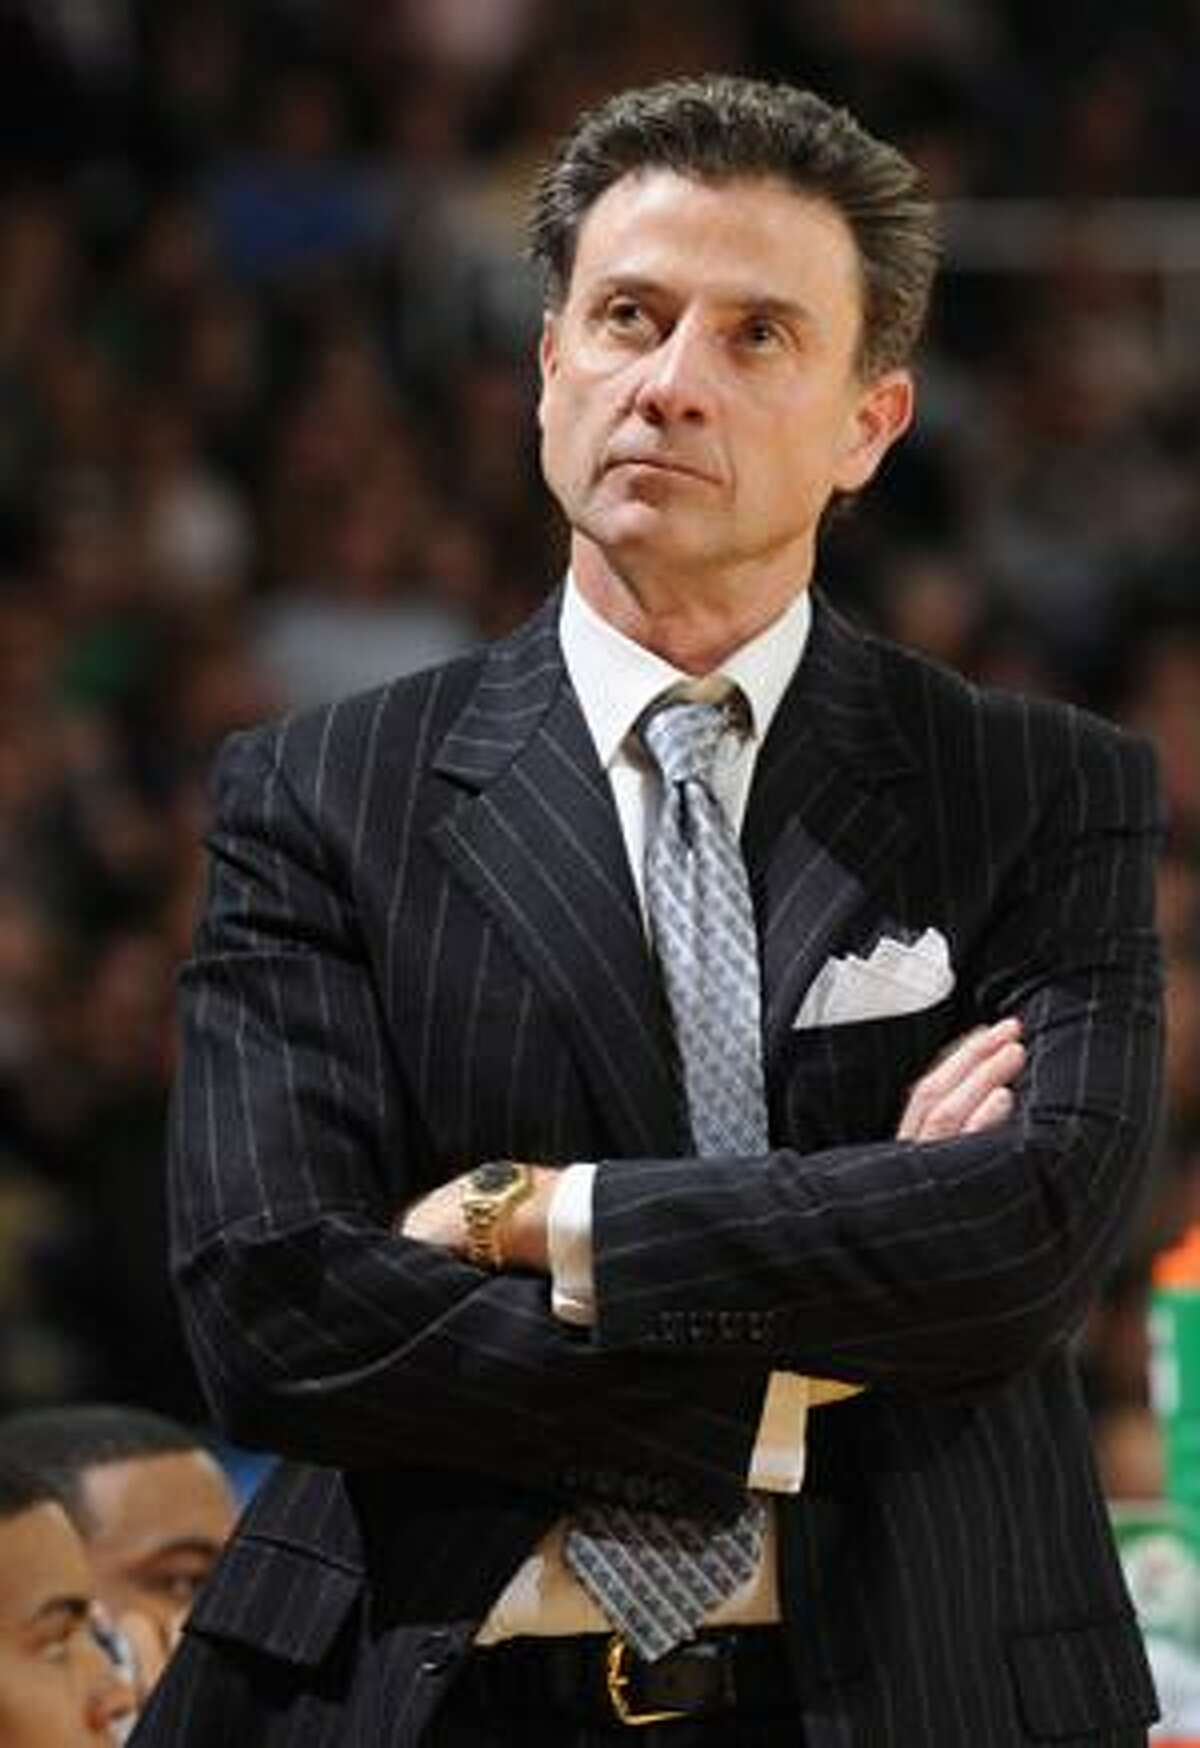 This is a Feb. 12 file photo showing Louisville coach Rick Pitino reacting during the closing minutes of a 90-57 loss to Notre Dame in an NCAA college men's basketball game in South Bend, Ind. Pitino told police he had sex in a restaurant six years ago with a woman now accused of trying to extort millions of dollars from him. And when she told him two weeks later she was pregnant, he gave her $3,000 for an abortion.